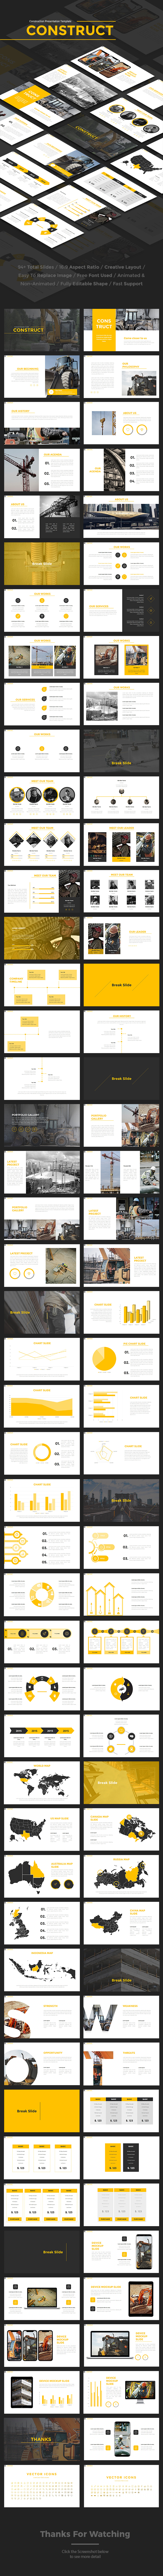 Construct - Construction Keynote Template - Business Keynote Templates